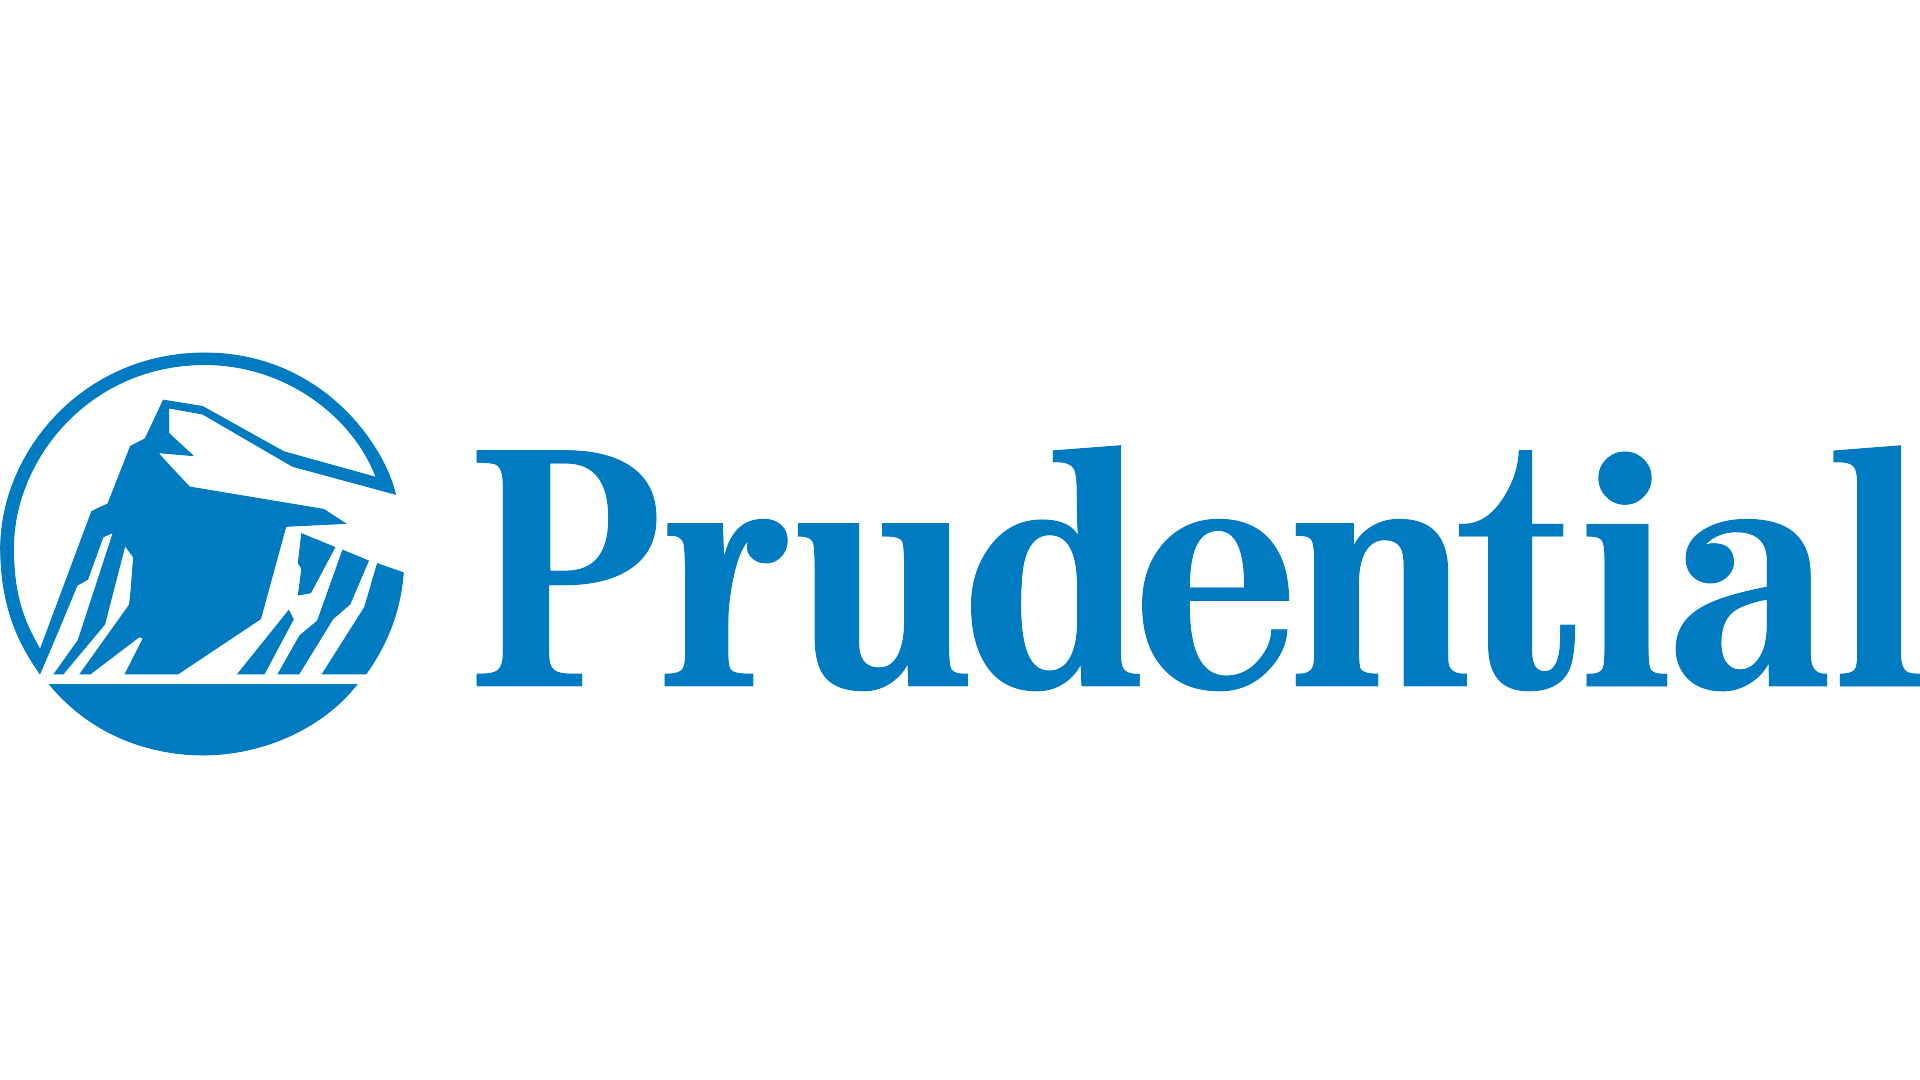 Prudential Logo.png